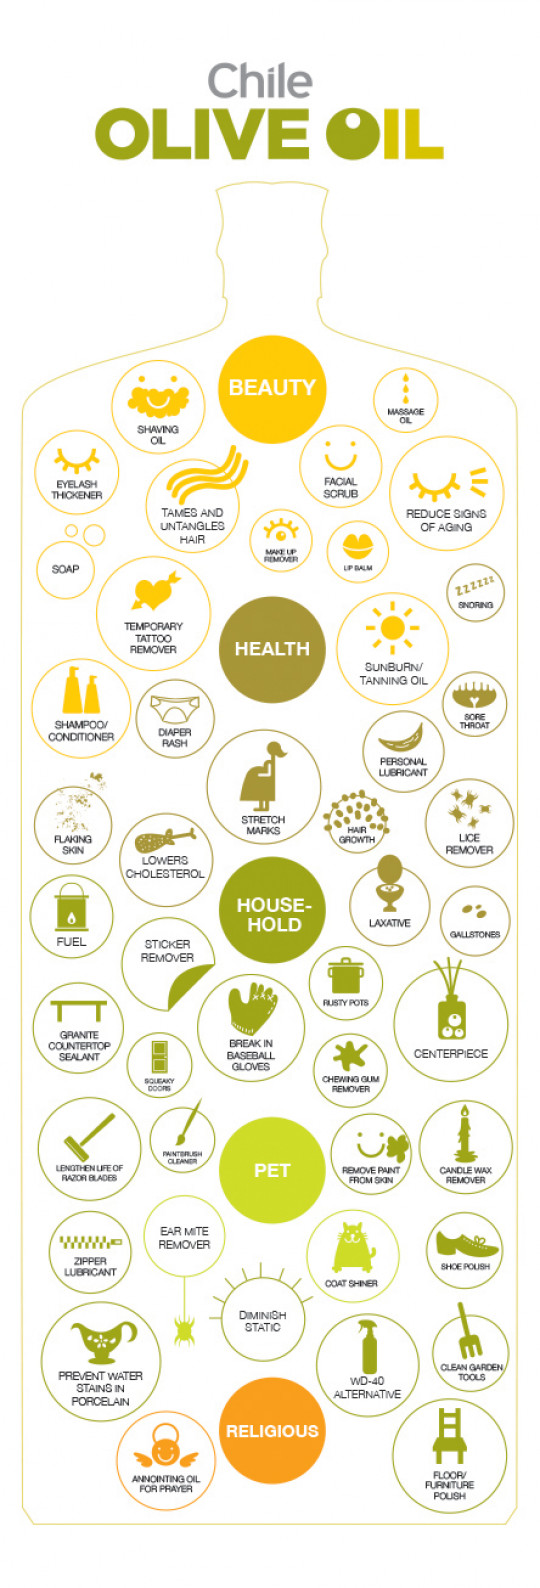 The uses of Olive Oil